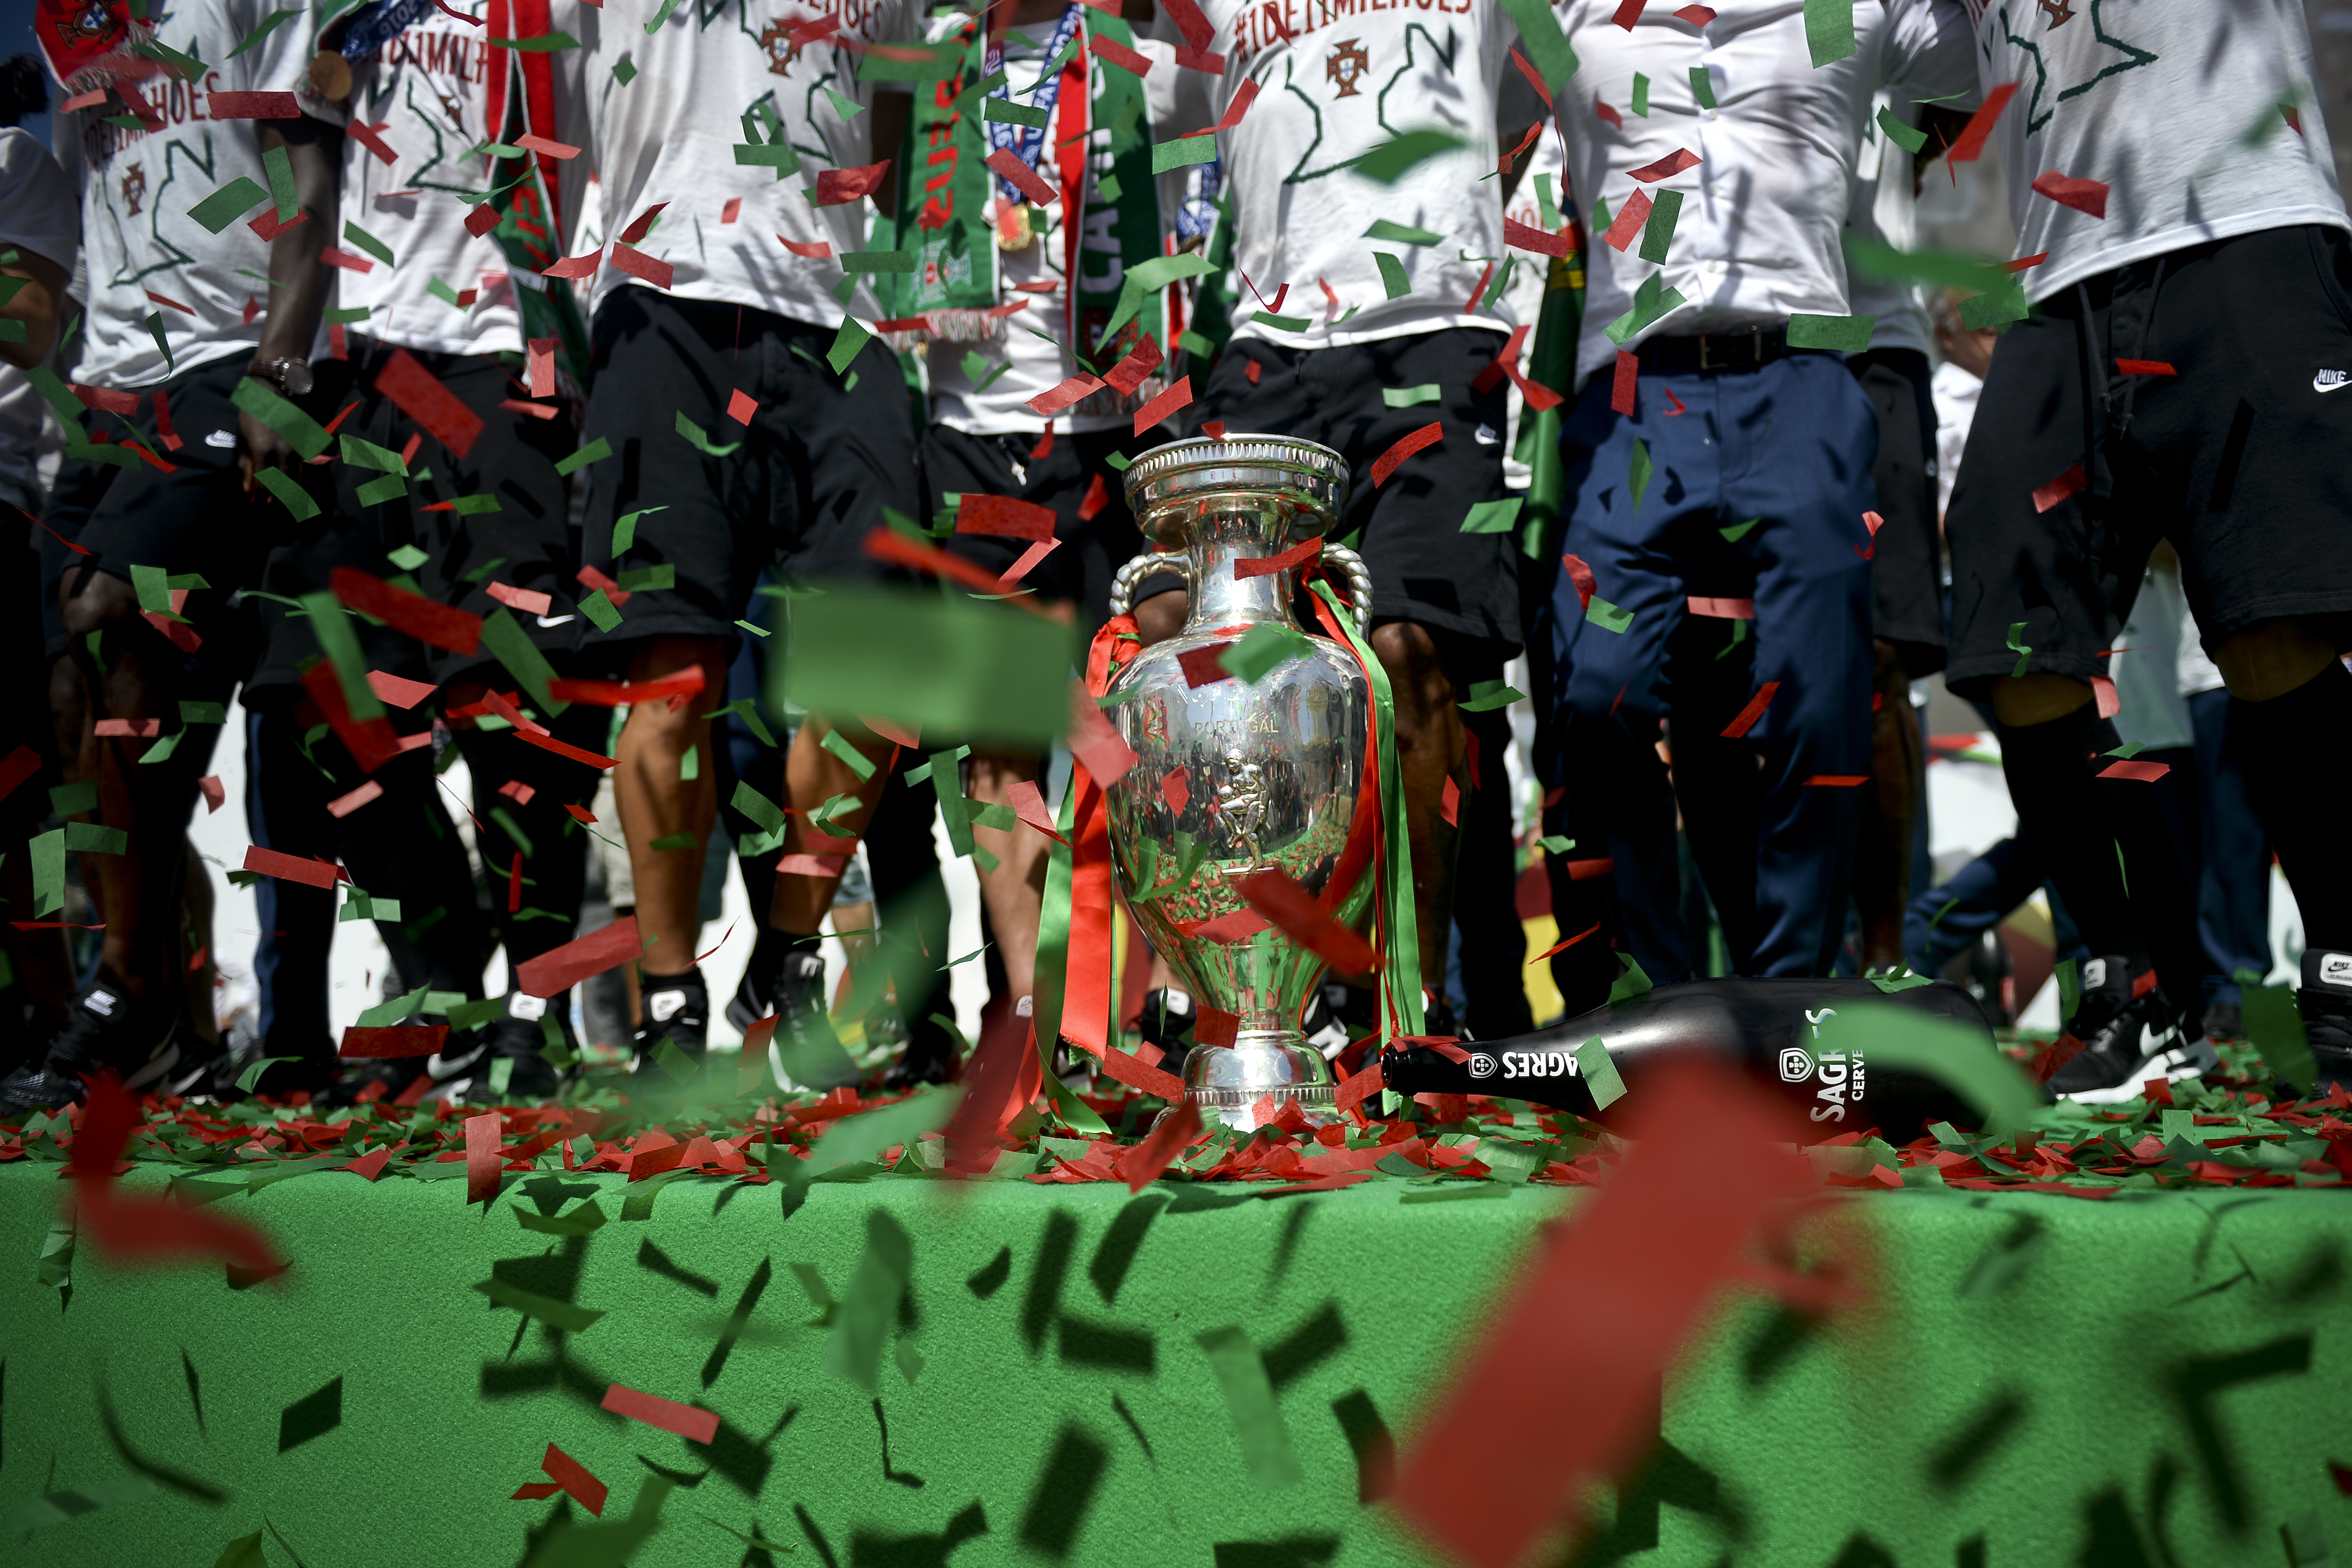 Portugal's football team players jump and sing next tto the trophy displayed on a stage at Alameda square in Lisbon on July 11, 2016 where thousands of supporters welcome them with scarfs and flags to celebrate their victory over France in their Euro 2016 final played yesterday. The Portuguese football team returned home to a heroes' welcome today after their upset 1-0 win triumph over France in the Euro 2016 final.  / AFP PHOTO / PATRICIA DE MELO MOREIRA